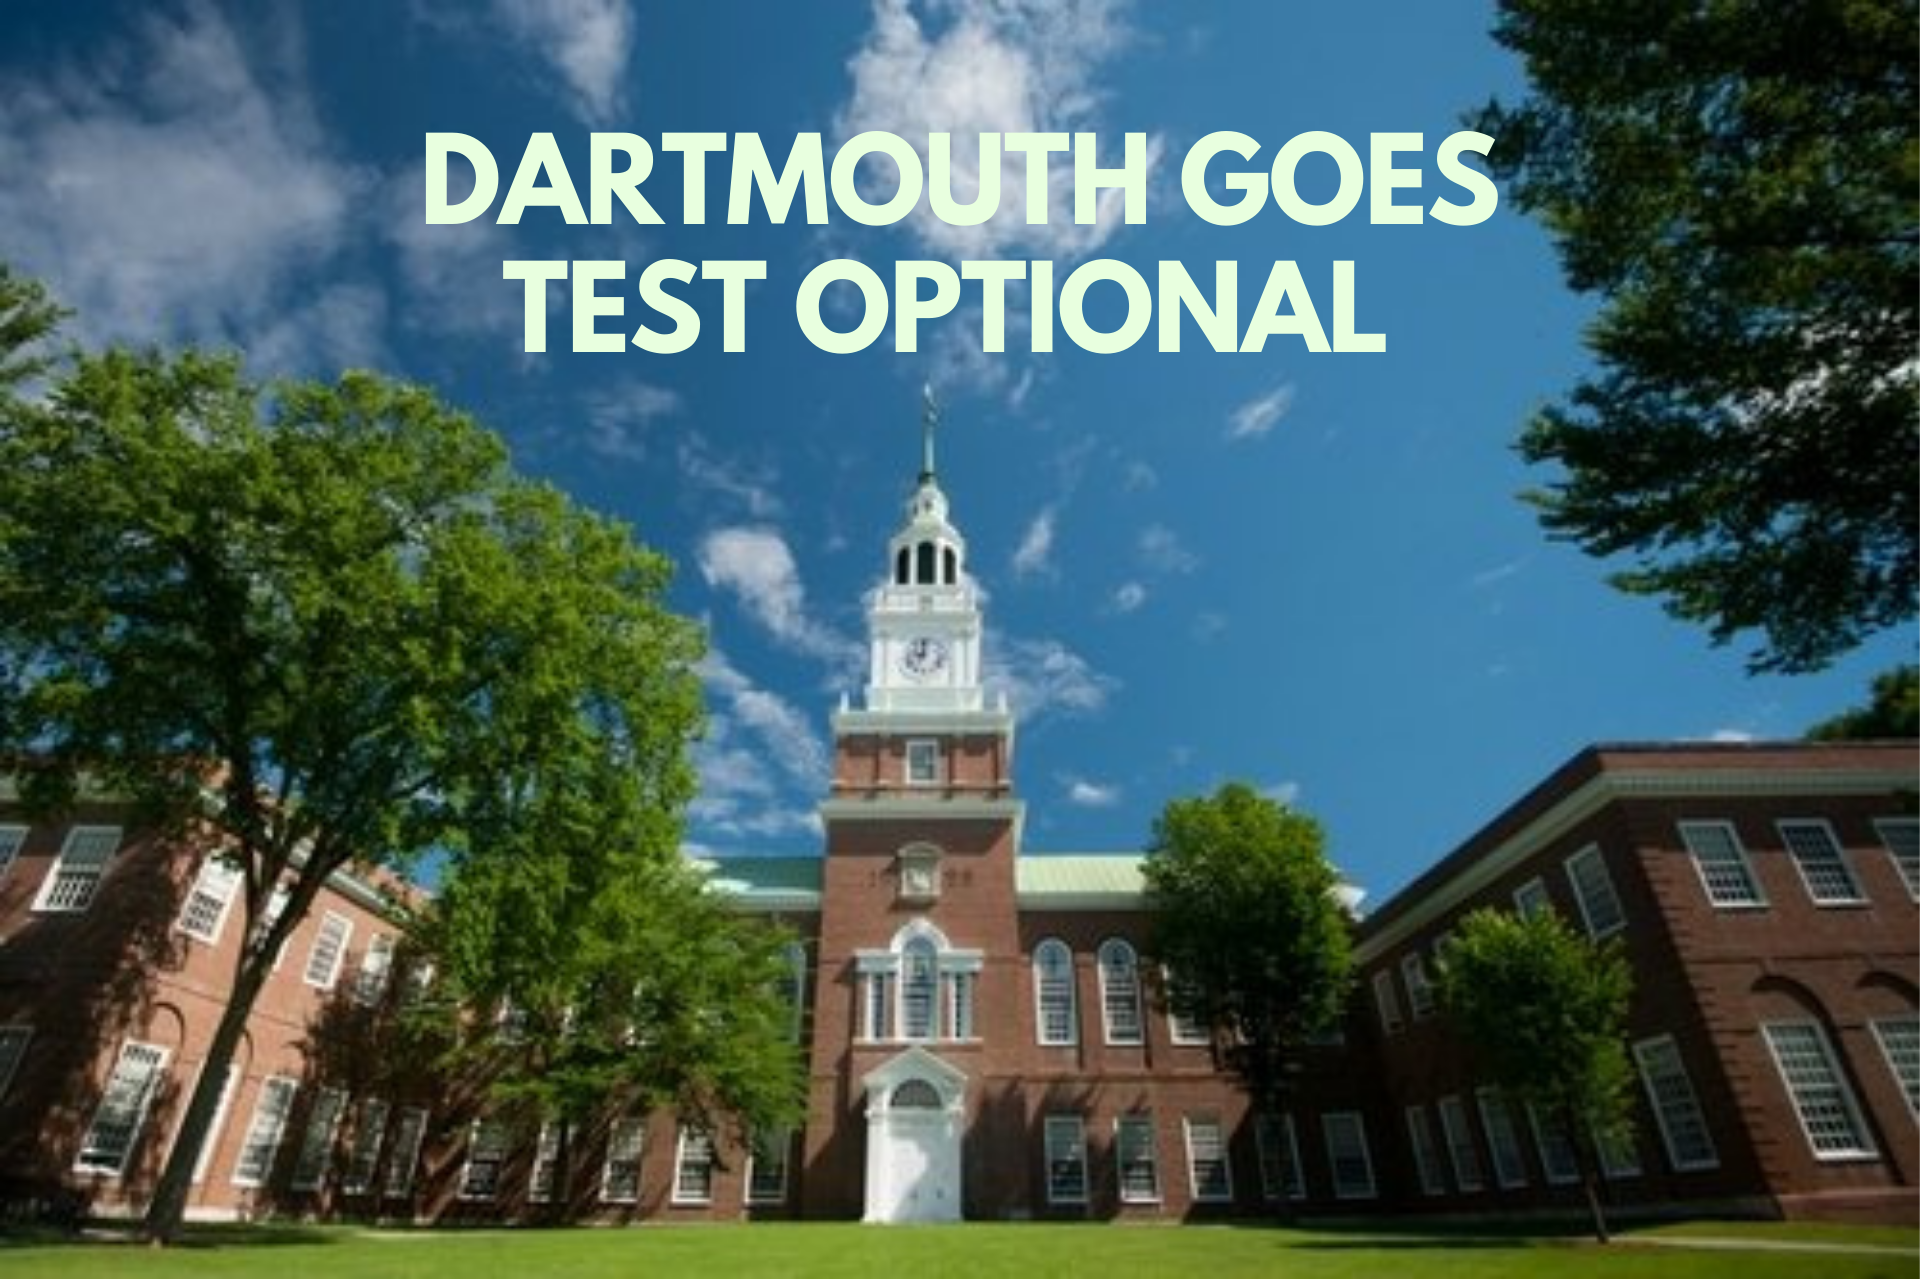 No at-home SAT this year. Dartmouth and Columbia have gone test-optional for 2020-2021